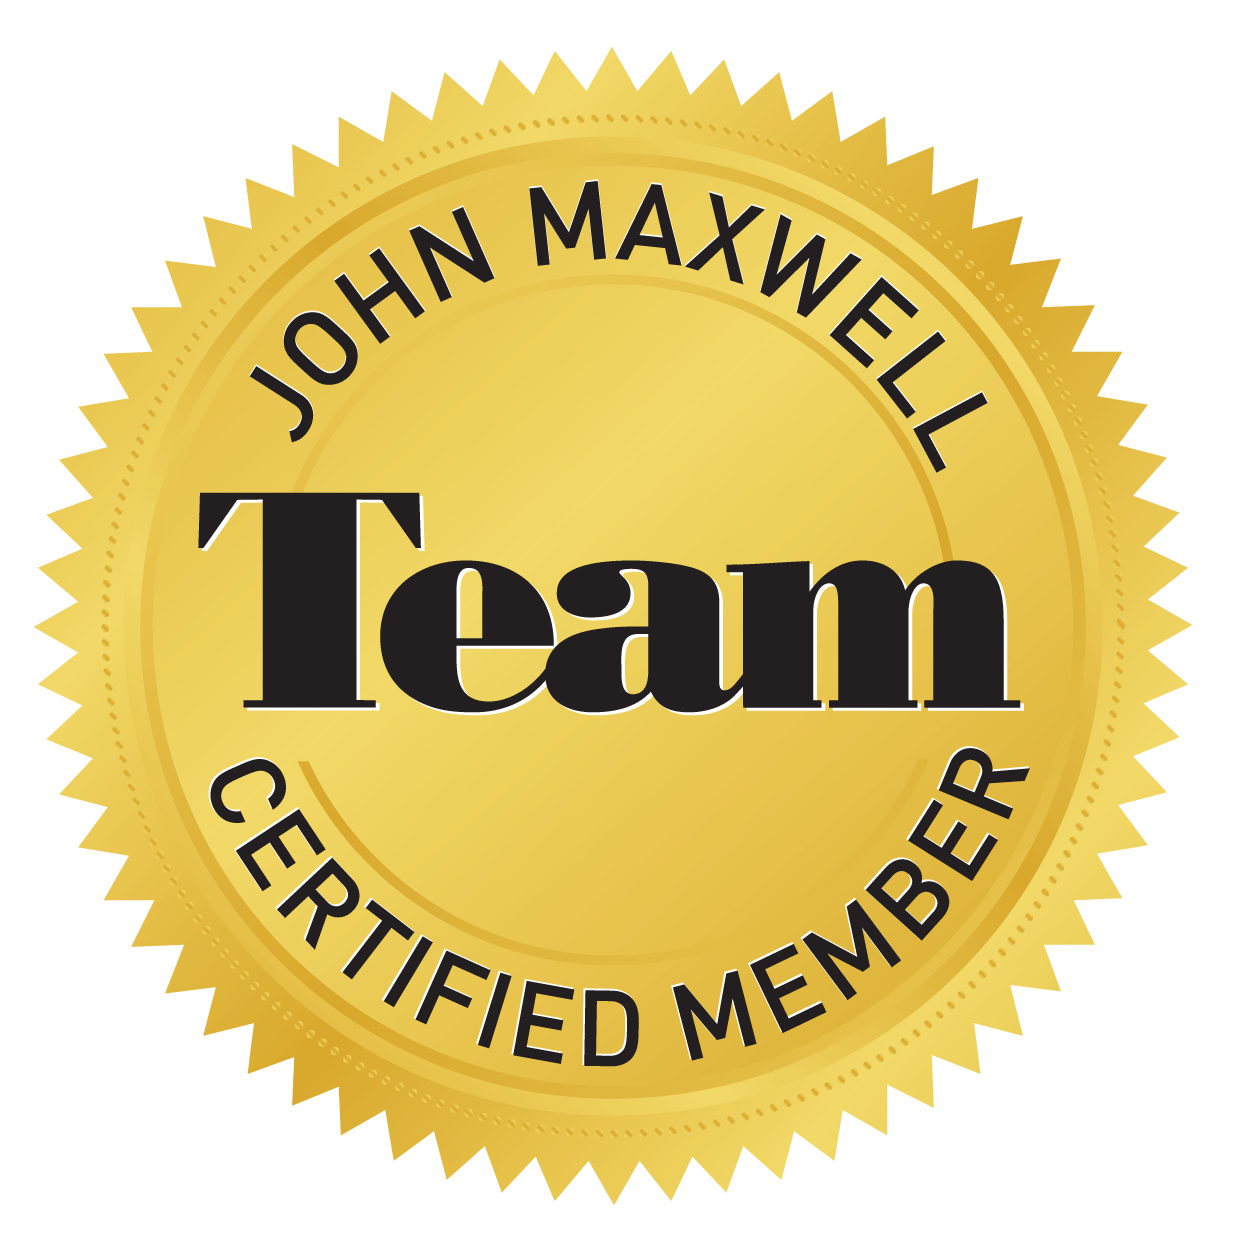 Cory Greenwood is a John Maxwell Team Certified Speaker